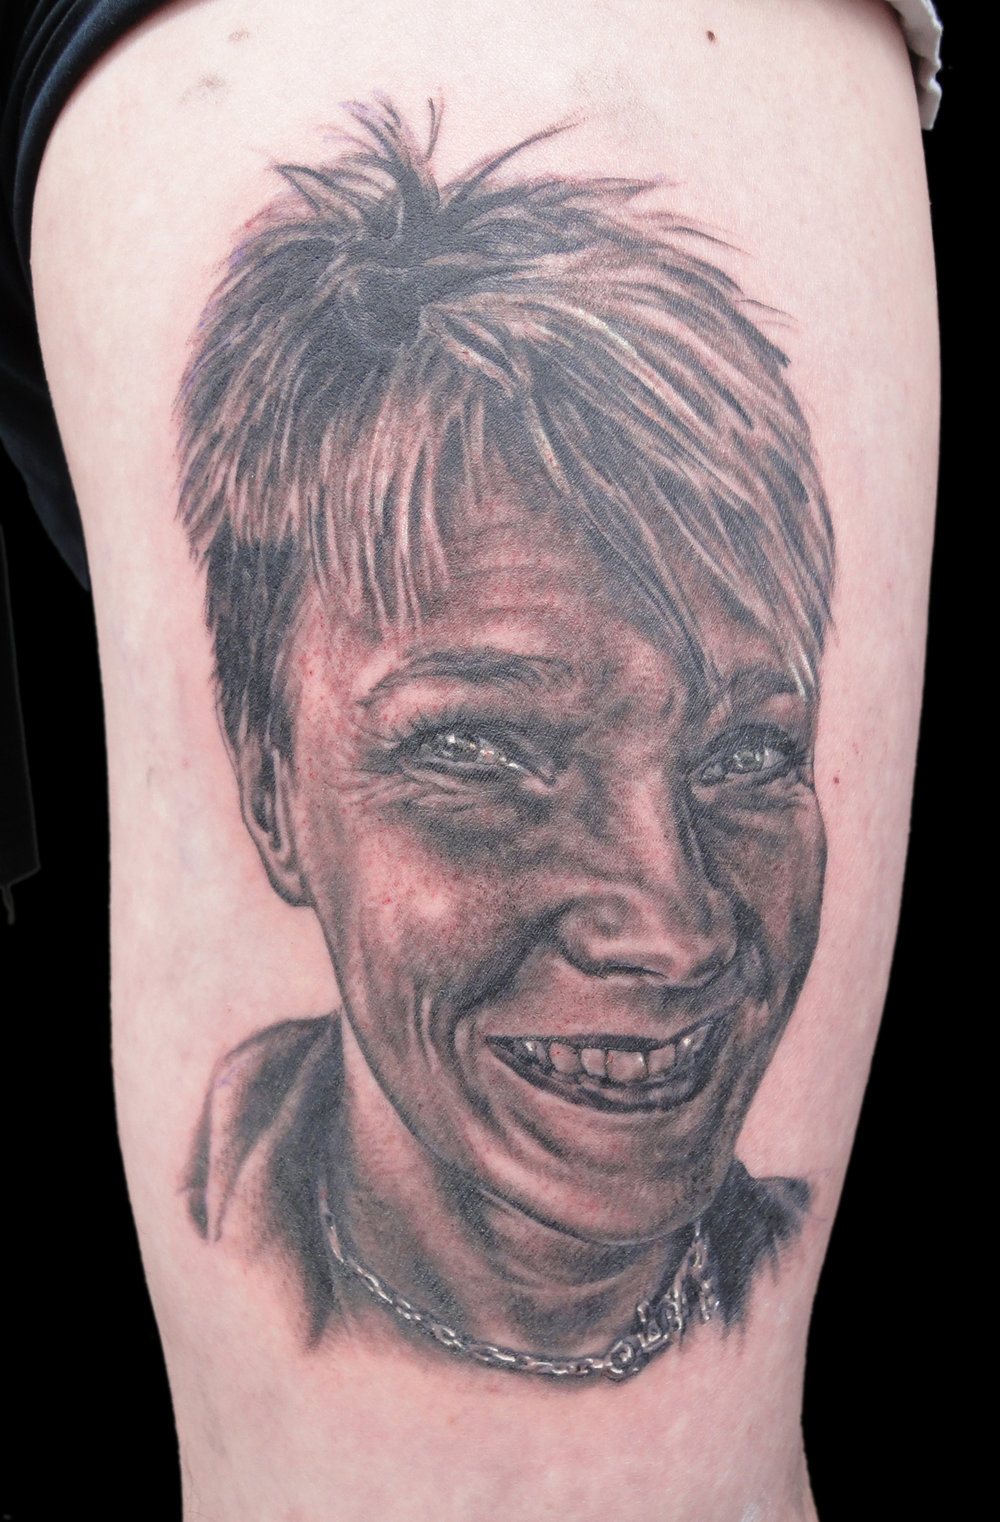 Black and Grey Portrait Tattoo on Thigh, (fresh) Oslo tattoo Convention, Norway